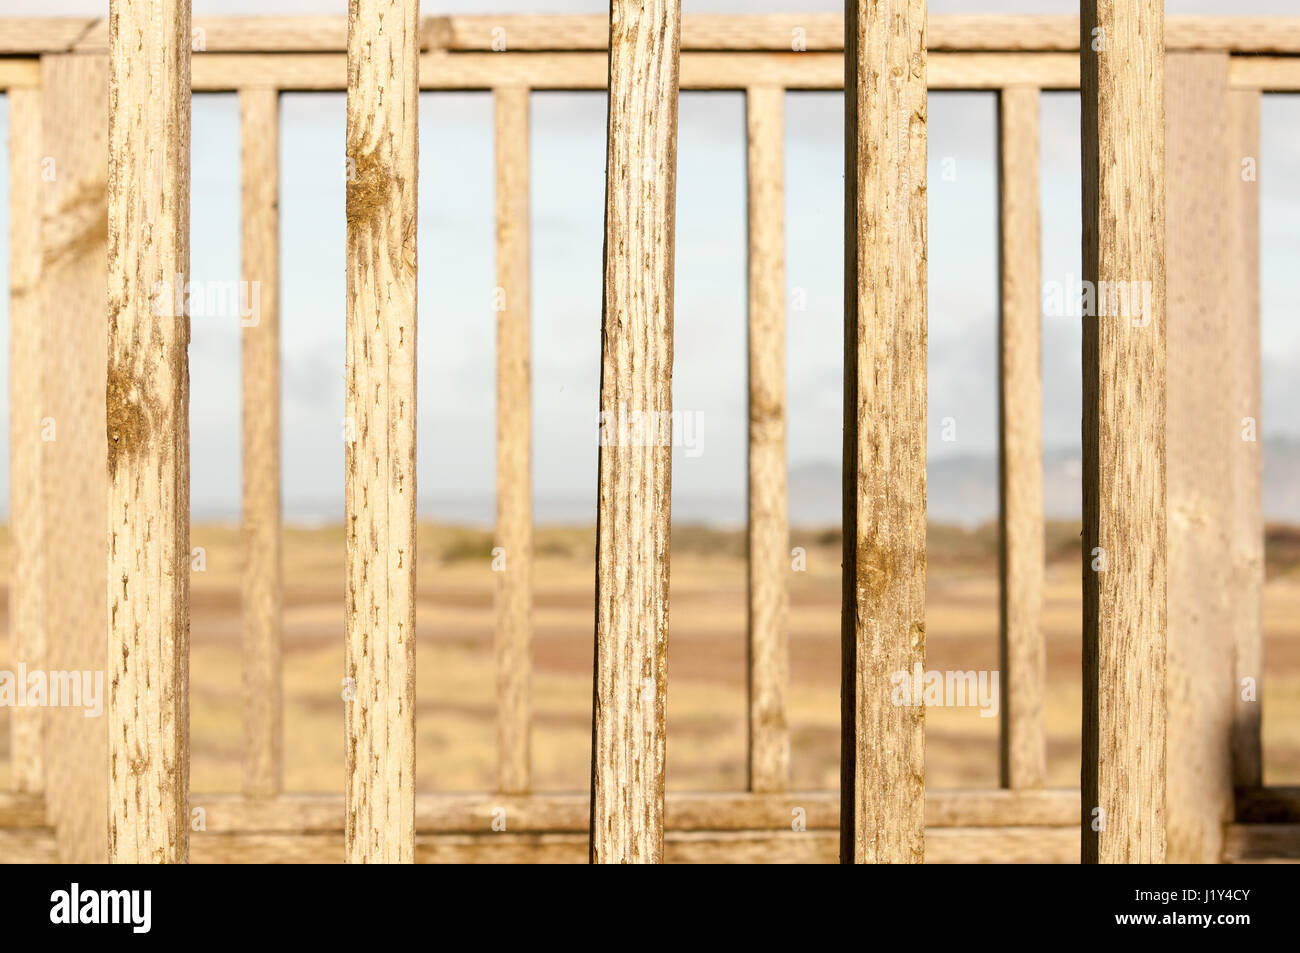 Rural scene, seen through wooden fence, close-up - Stock Image